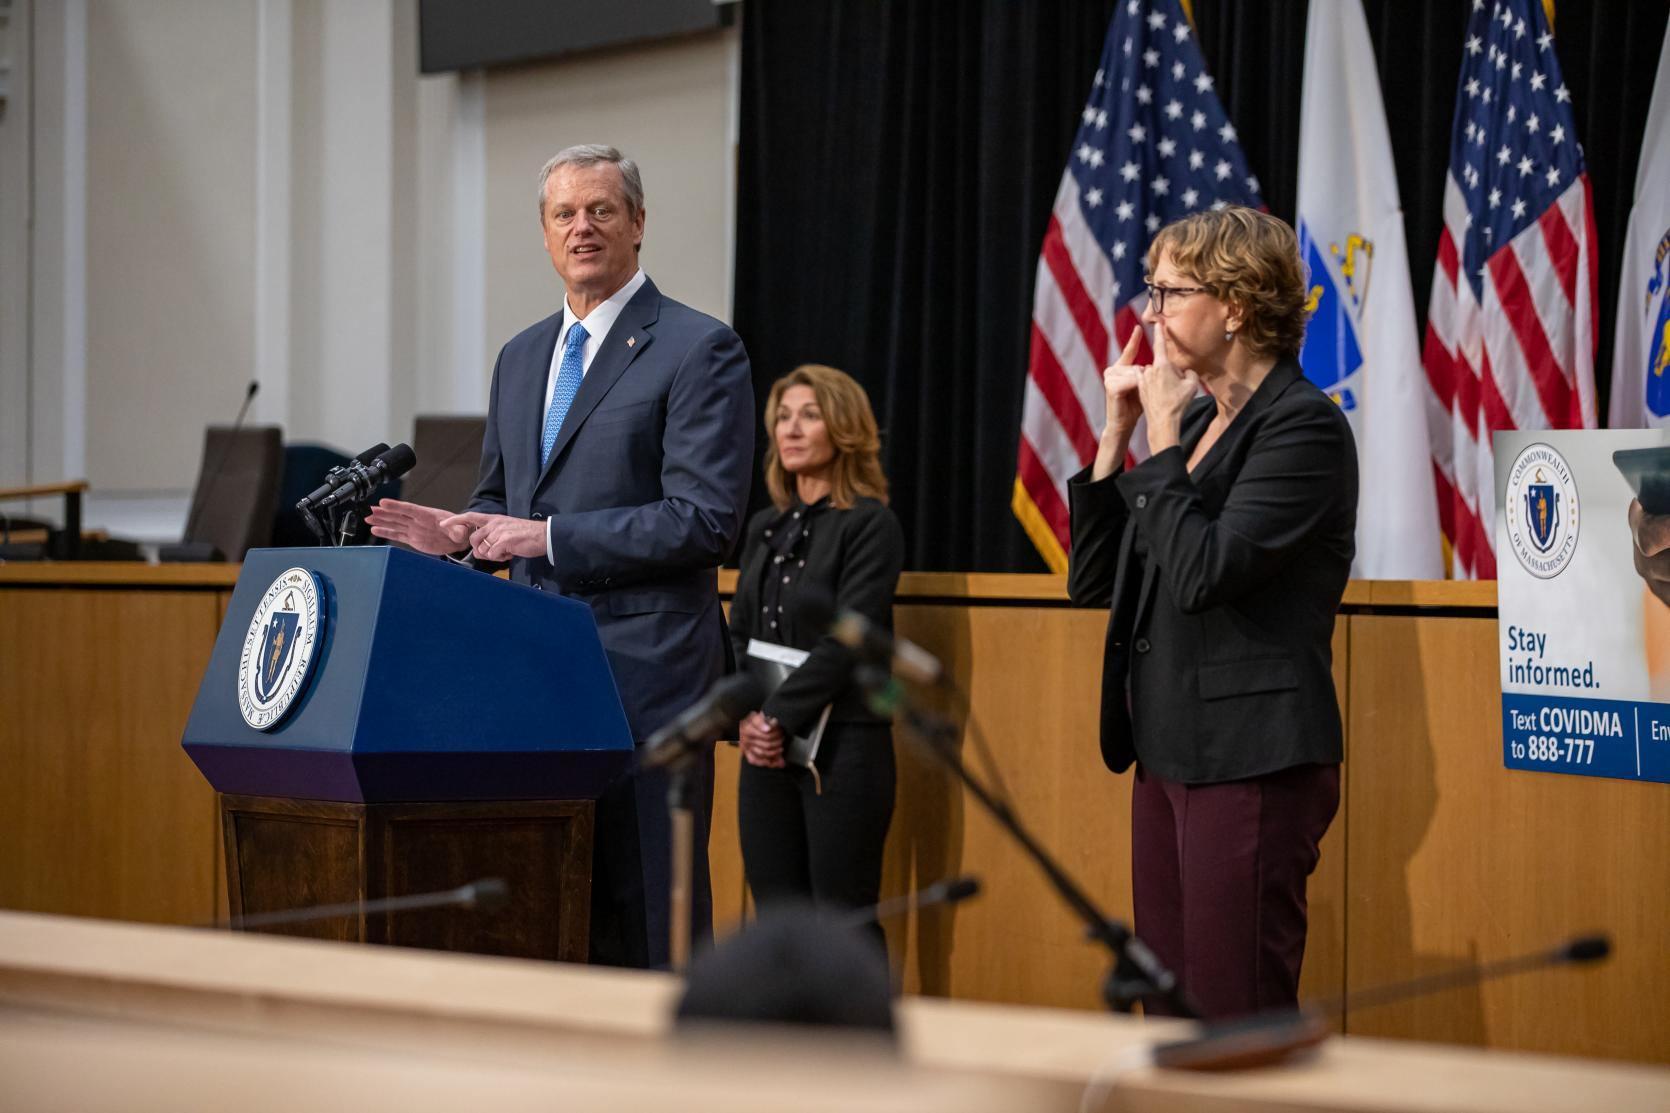 Baker-Polito Administration Announces Updated Travel Guidelines to Support COVID-19 Response